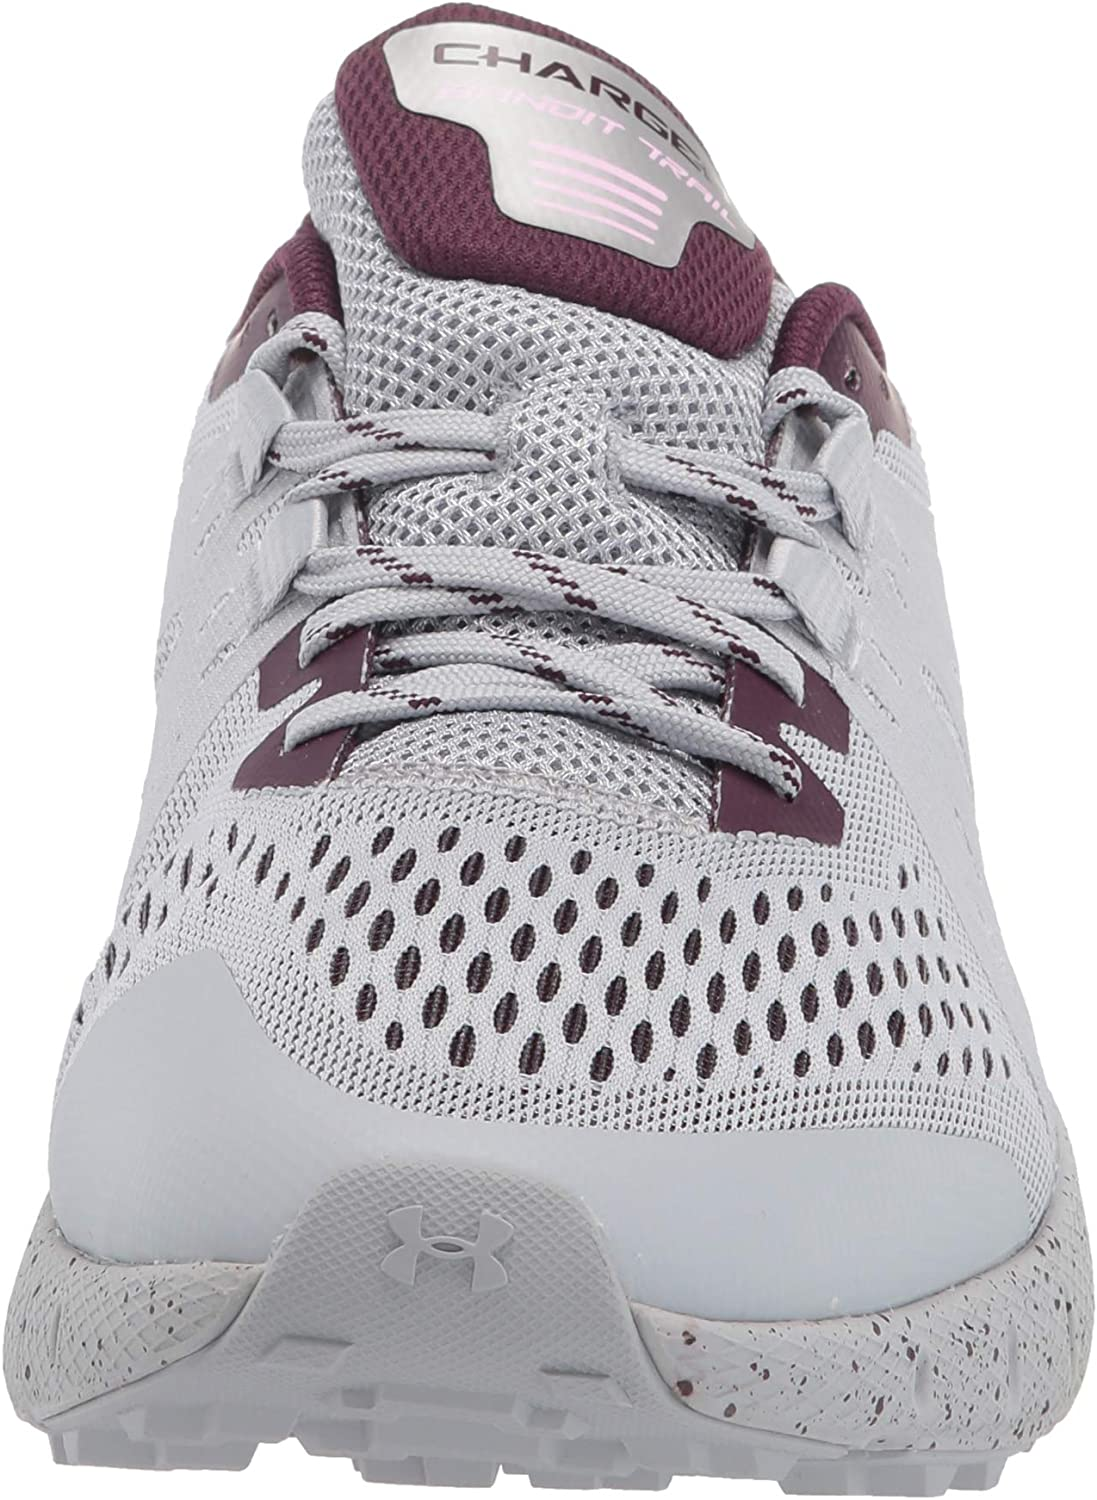 Under Armour Womens Charged Bandit Trail Running Shoe